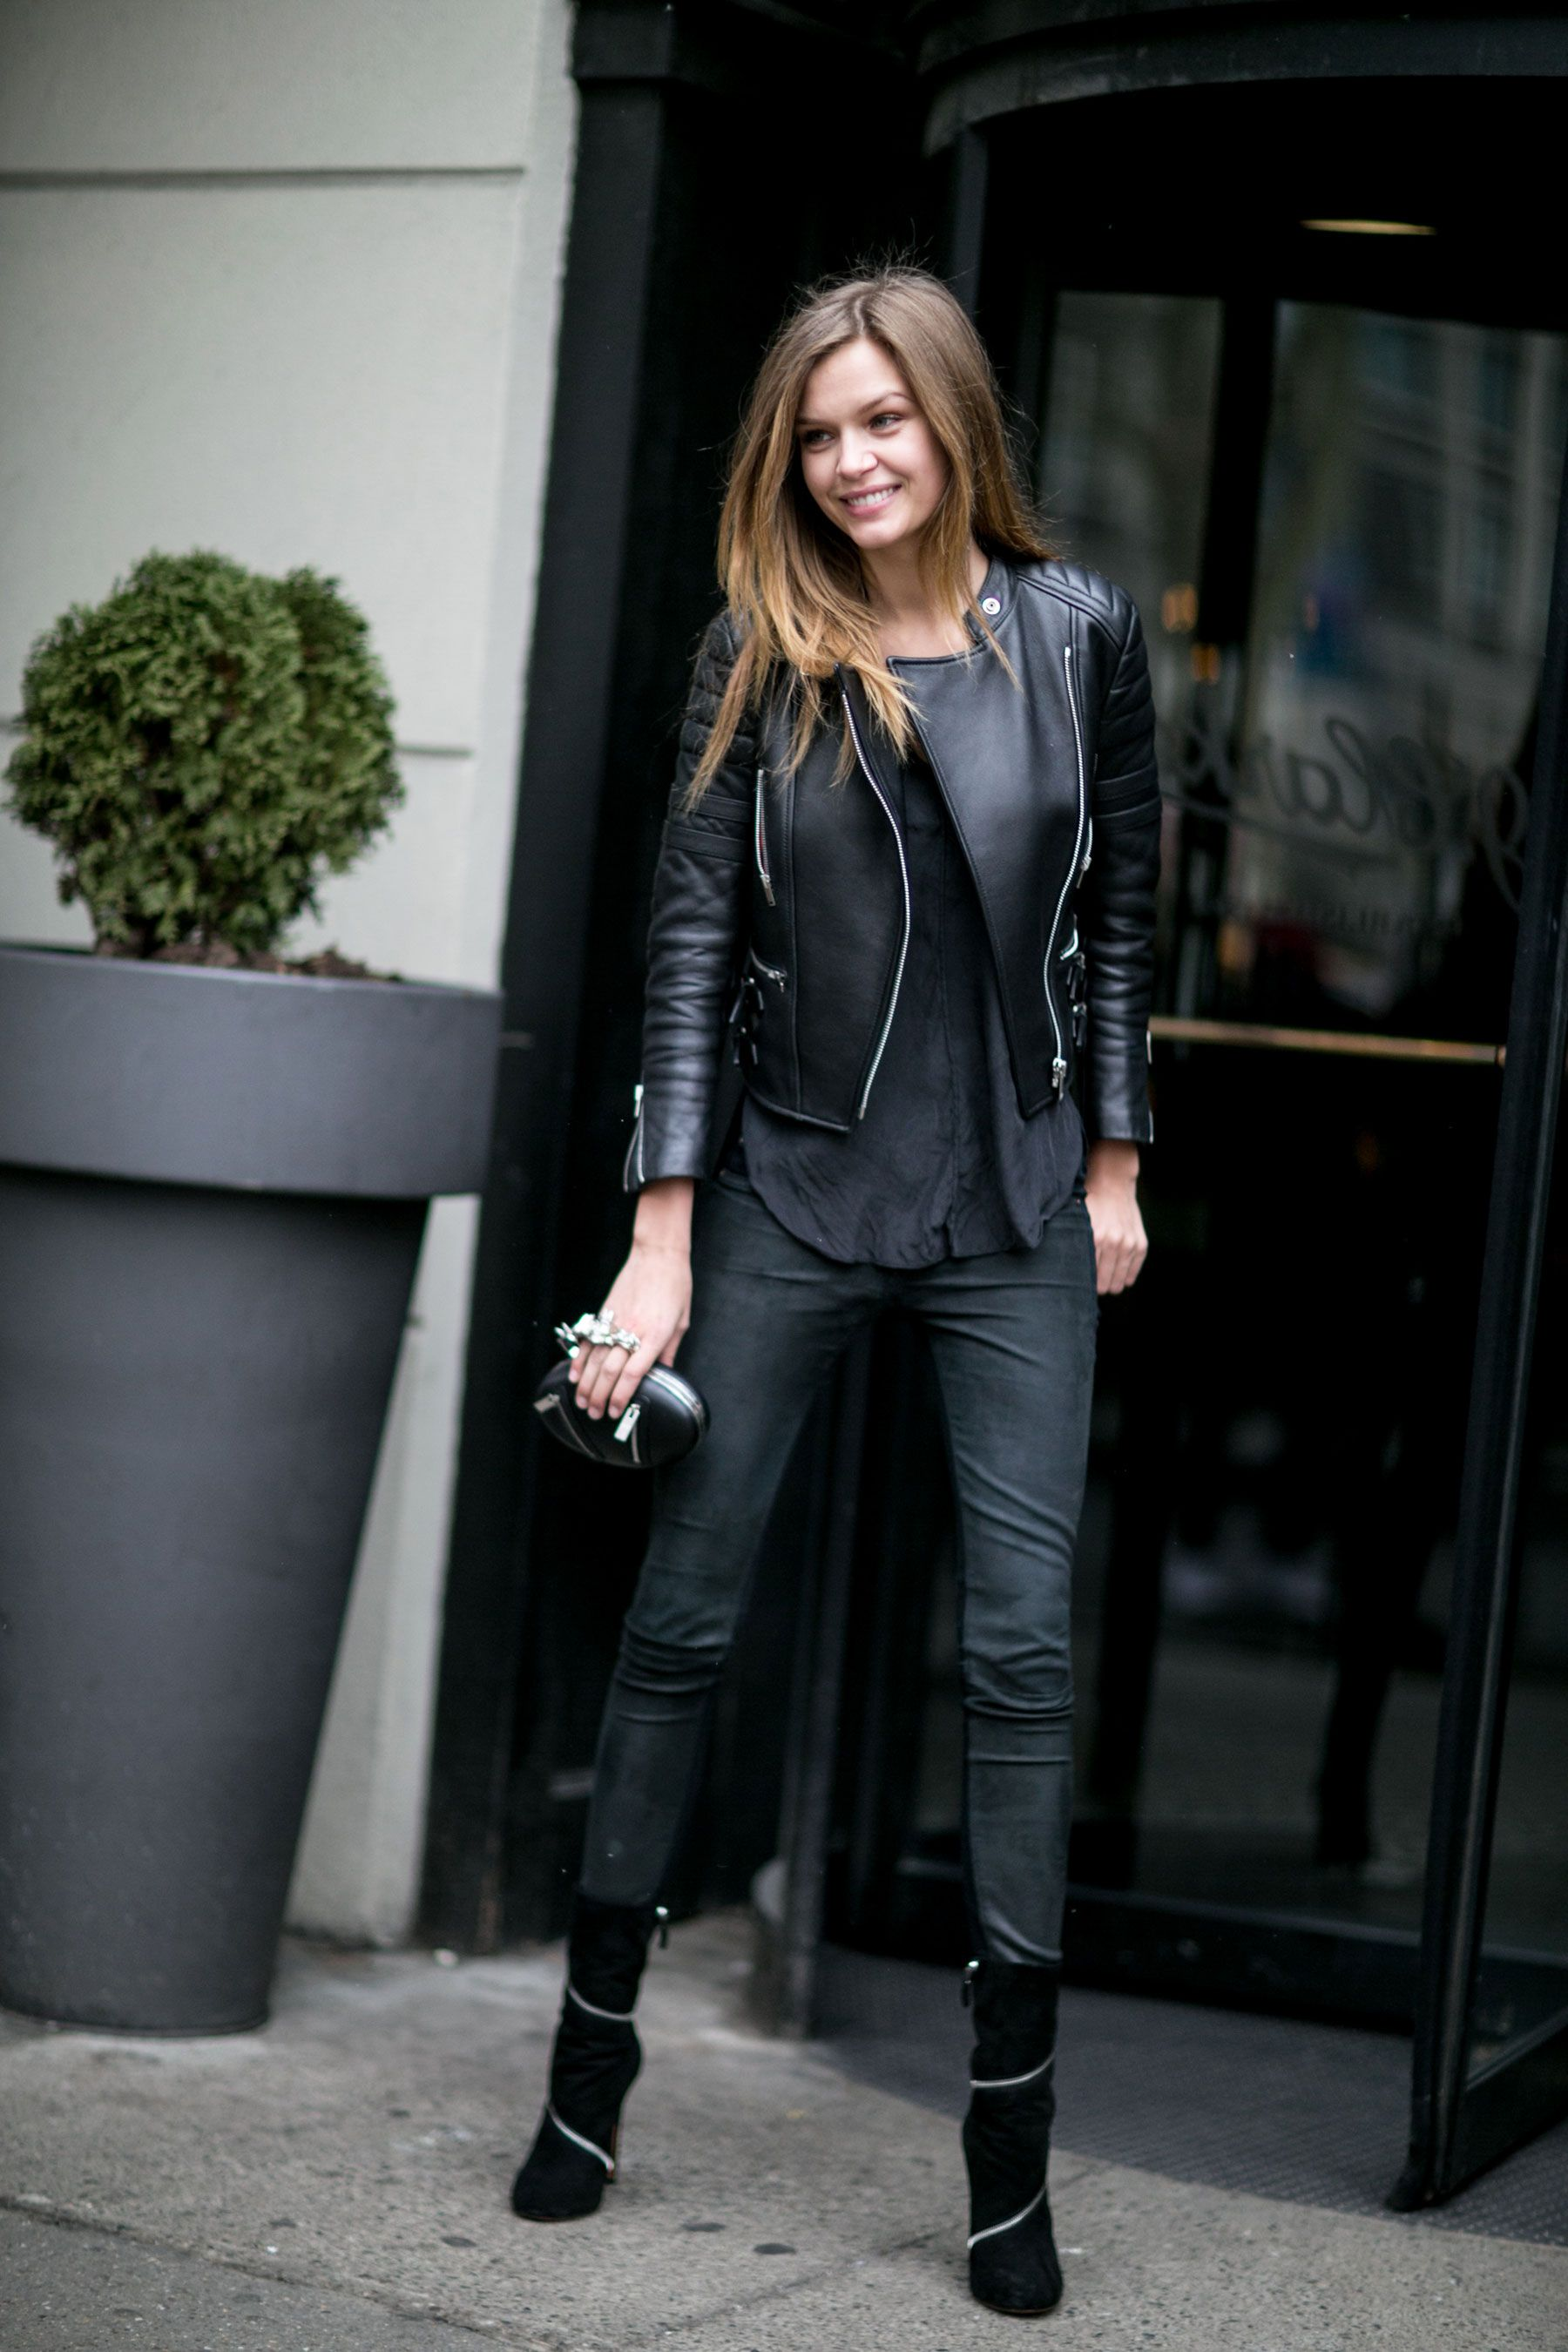 79 Incredible Model Off Duty Street Style Outfits From New York Fashion Week Cropped Leather